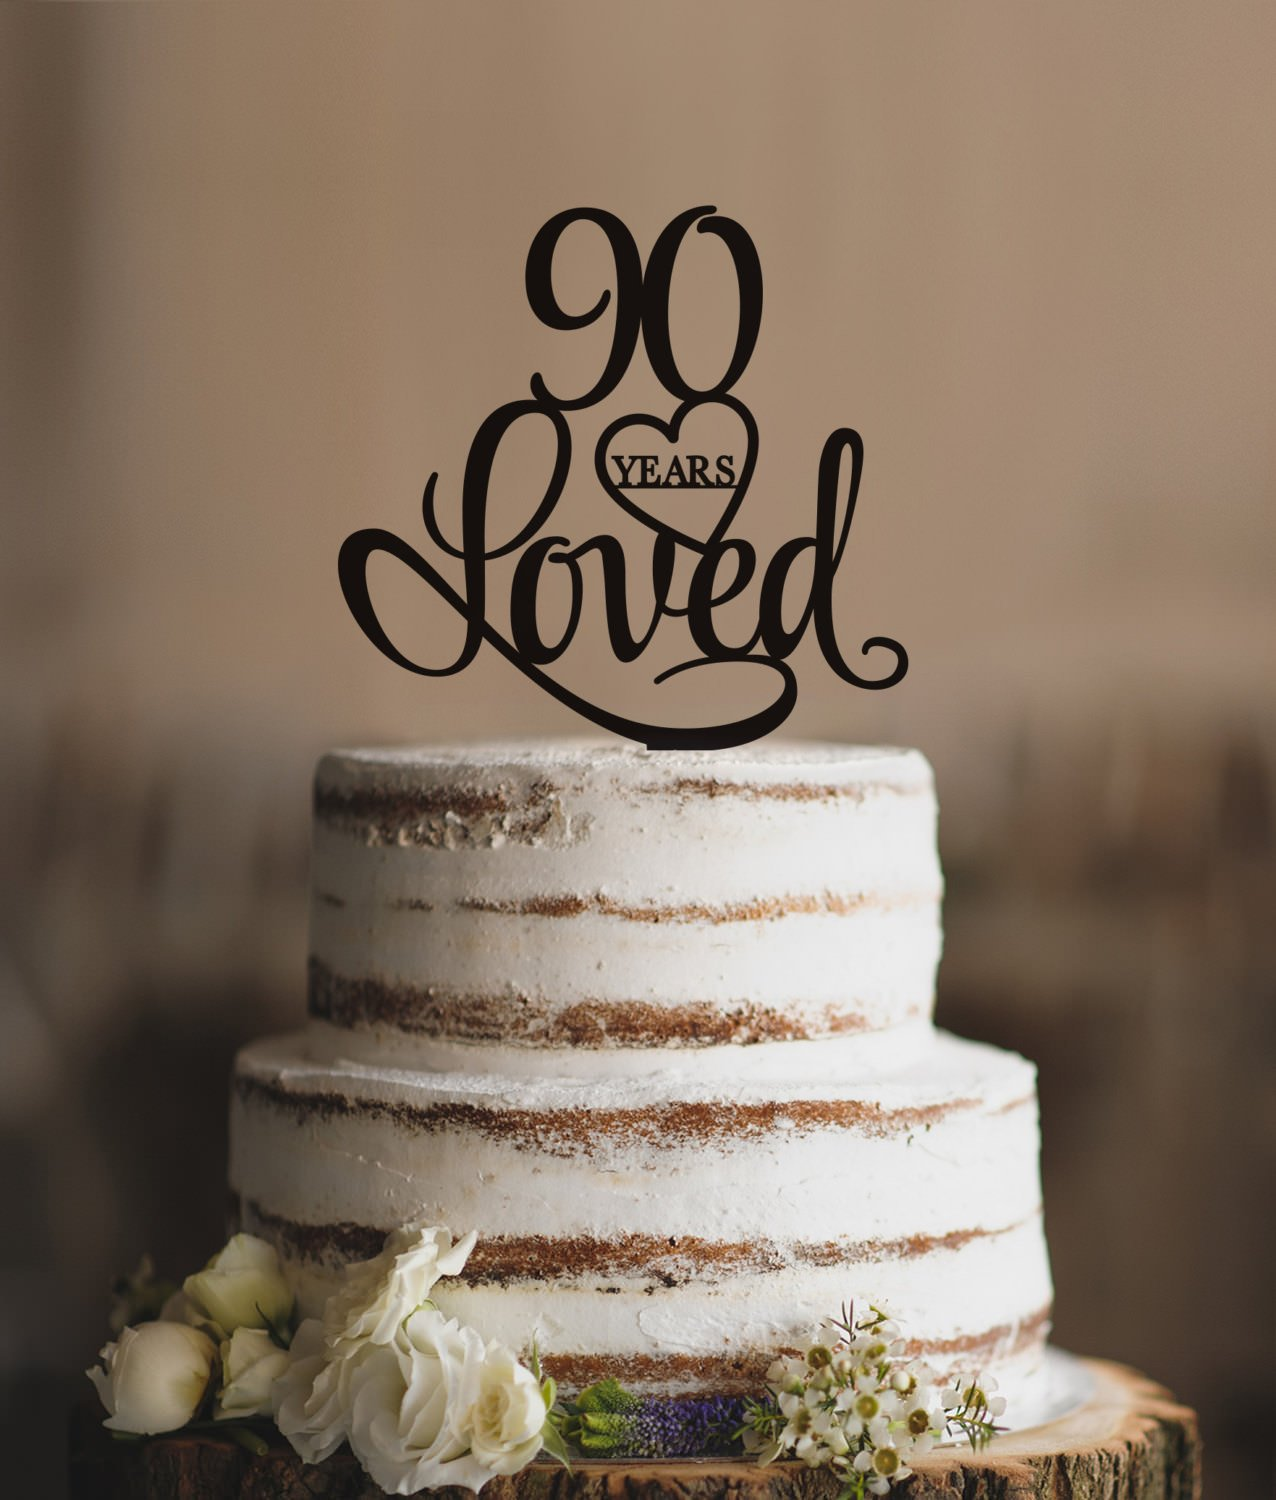 90 Years Loved Cake Topper Classy 90th Birthday Elegant Ninetieth Gift For Women Men Party Decorations Toppers